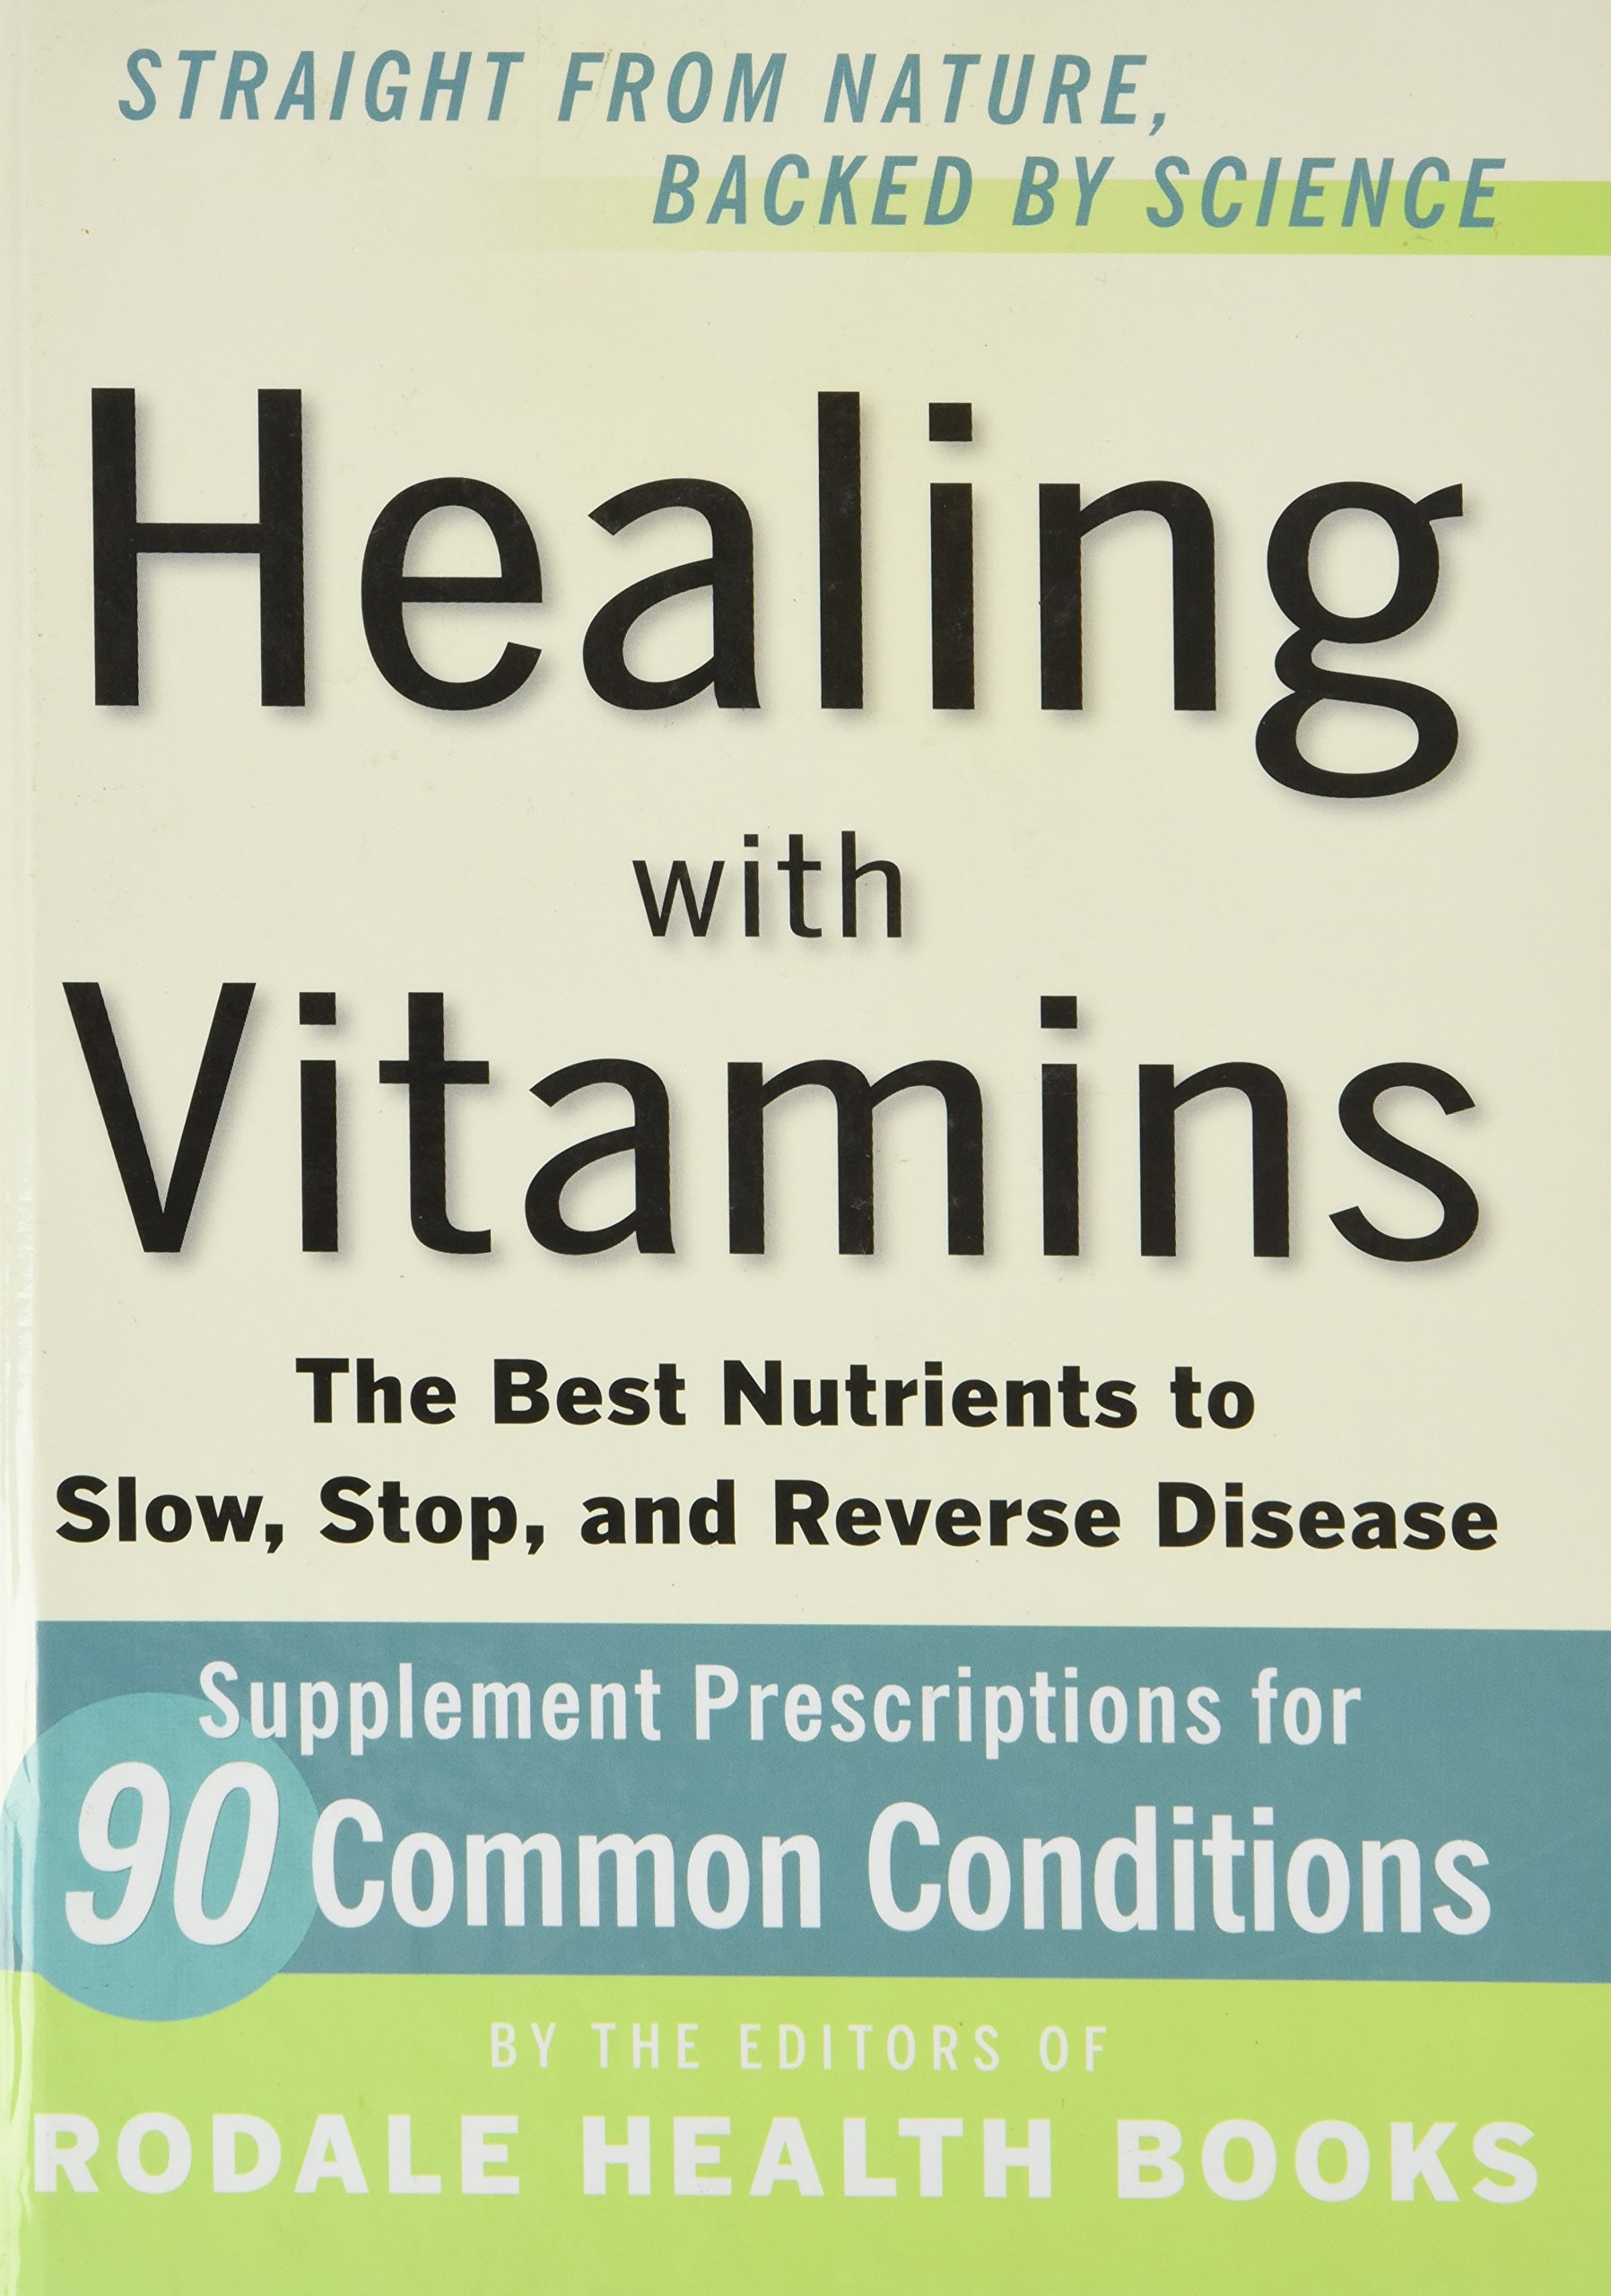 Straight From Nature, Backed By Science - Healing With Vitamins - The Best Nutrients To Slow, Stop, And Reverse Disease pdf